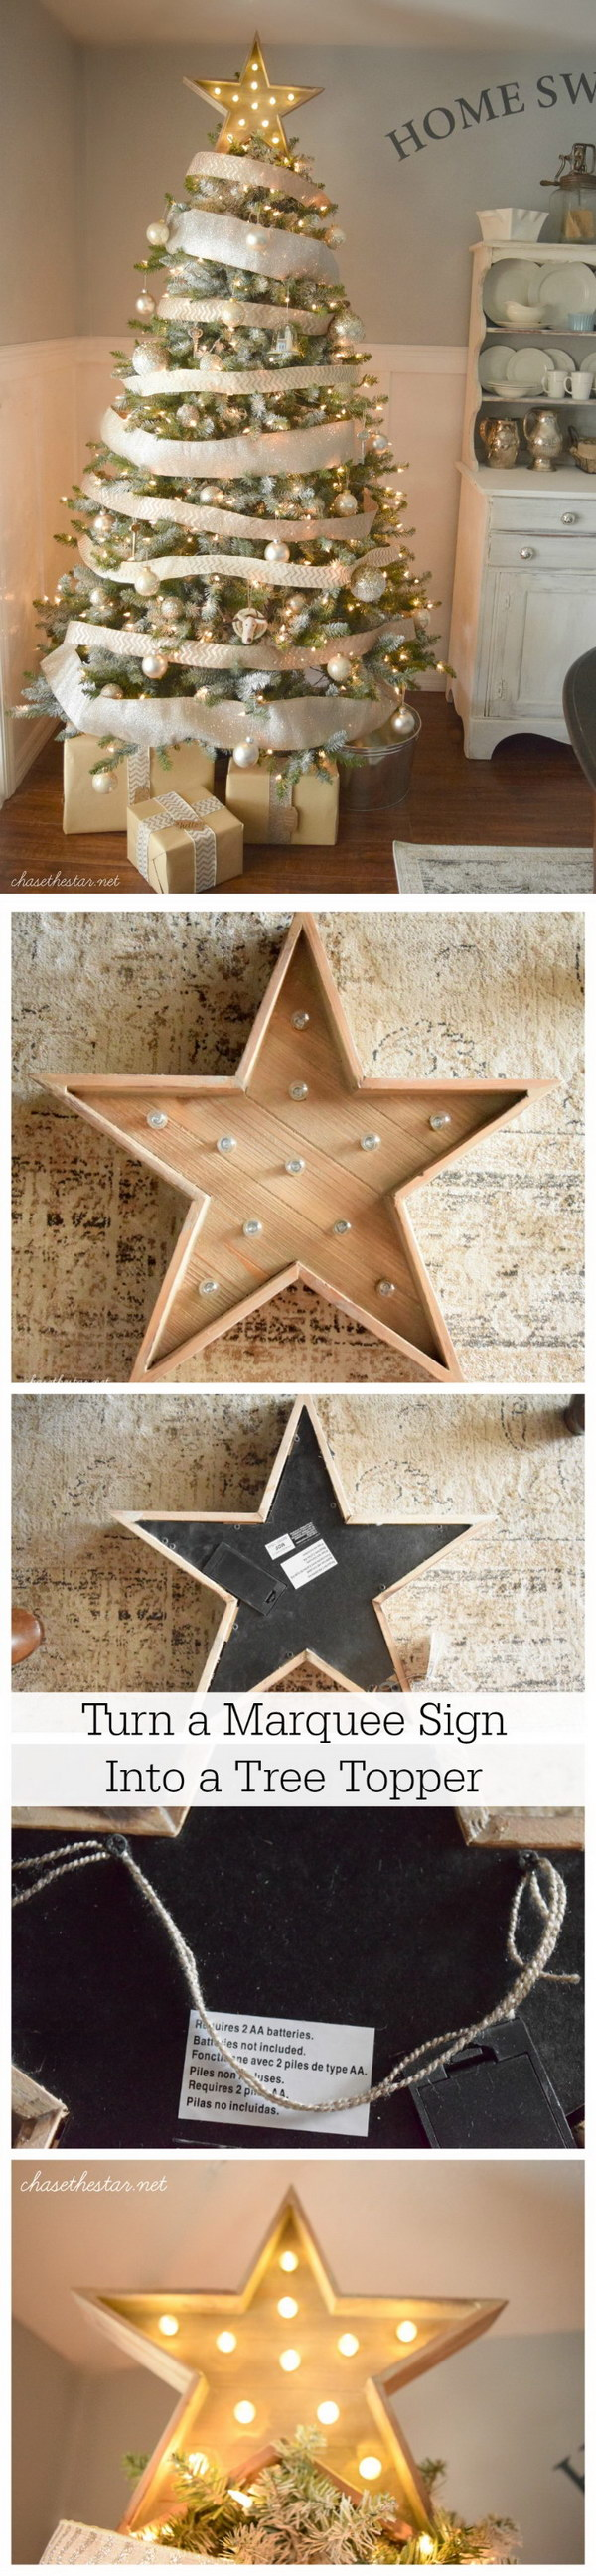 Marquee Star Tree Topper.